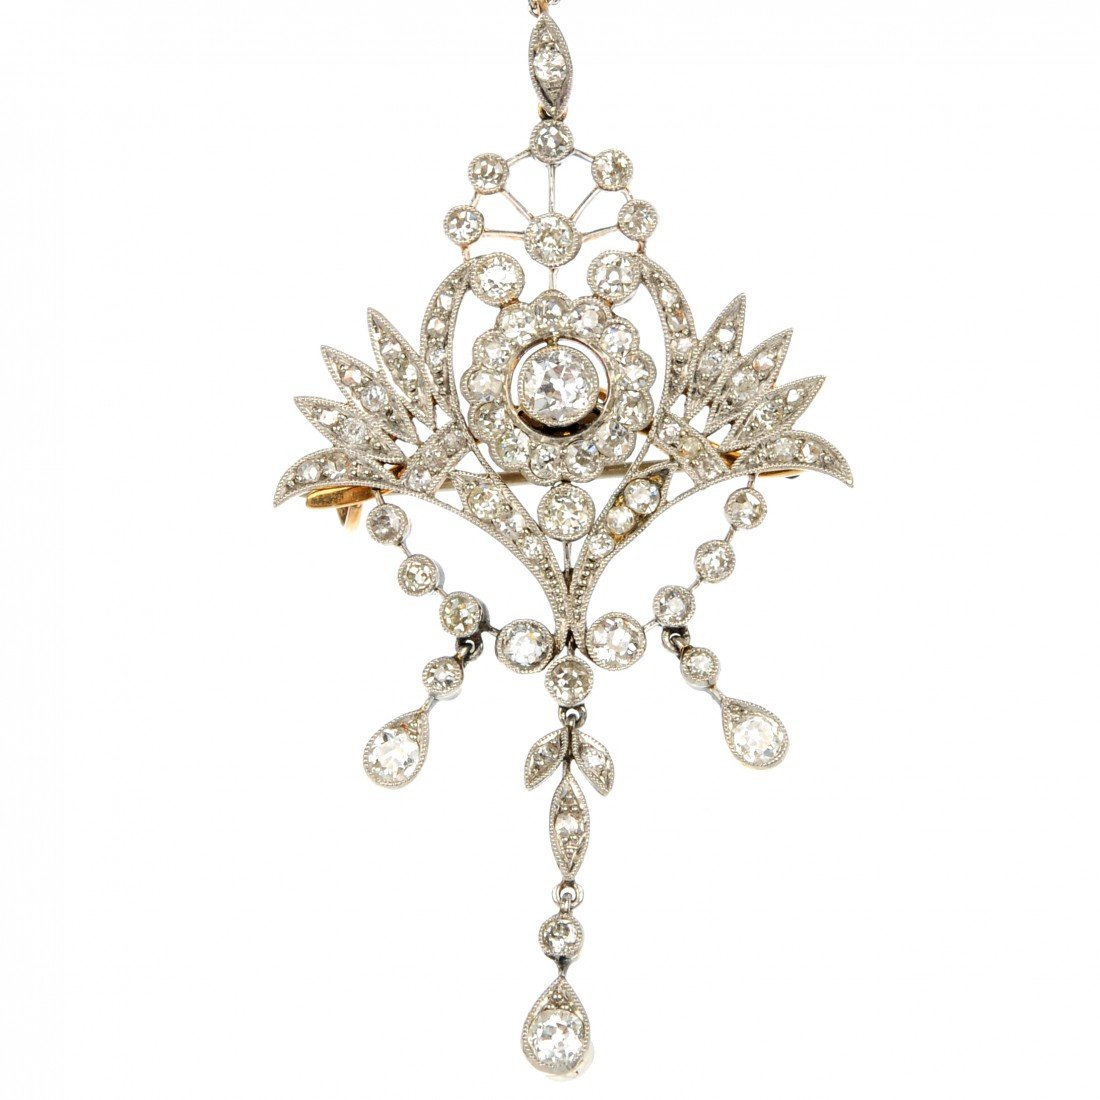 17: An early 20th century diamond pendant. Of openwork